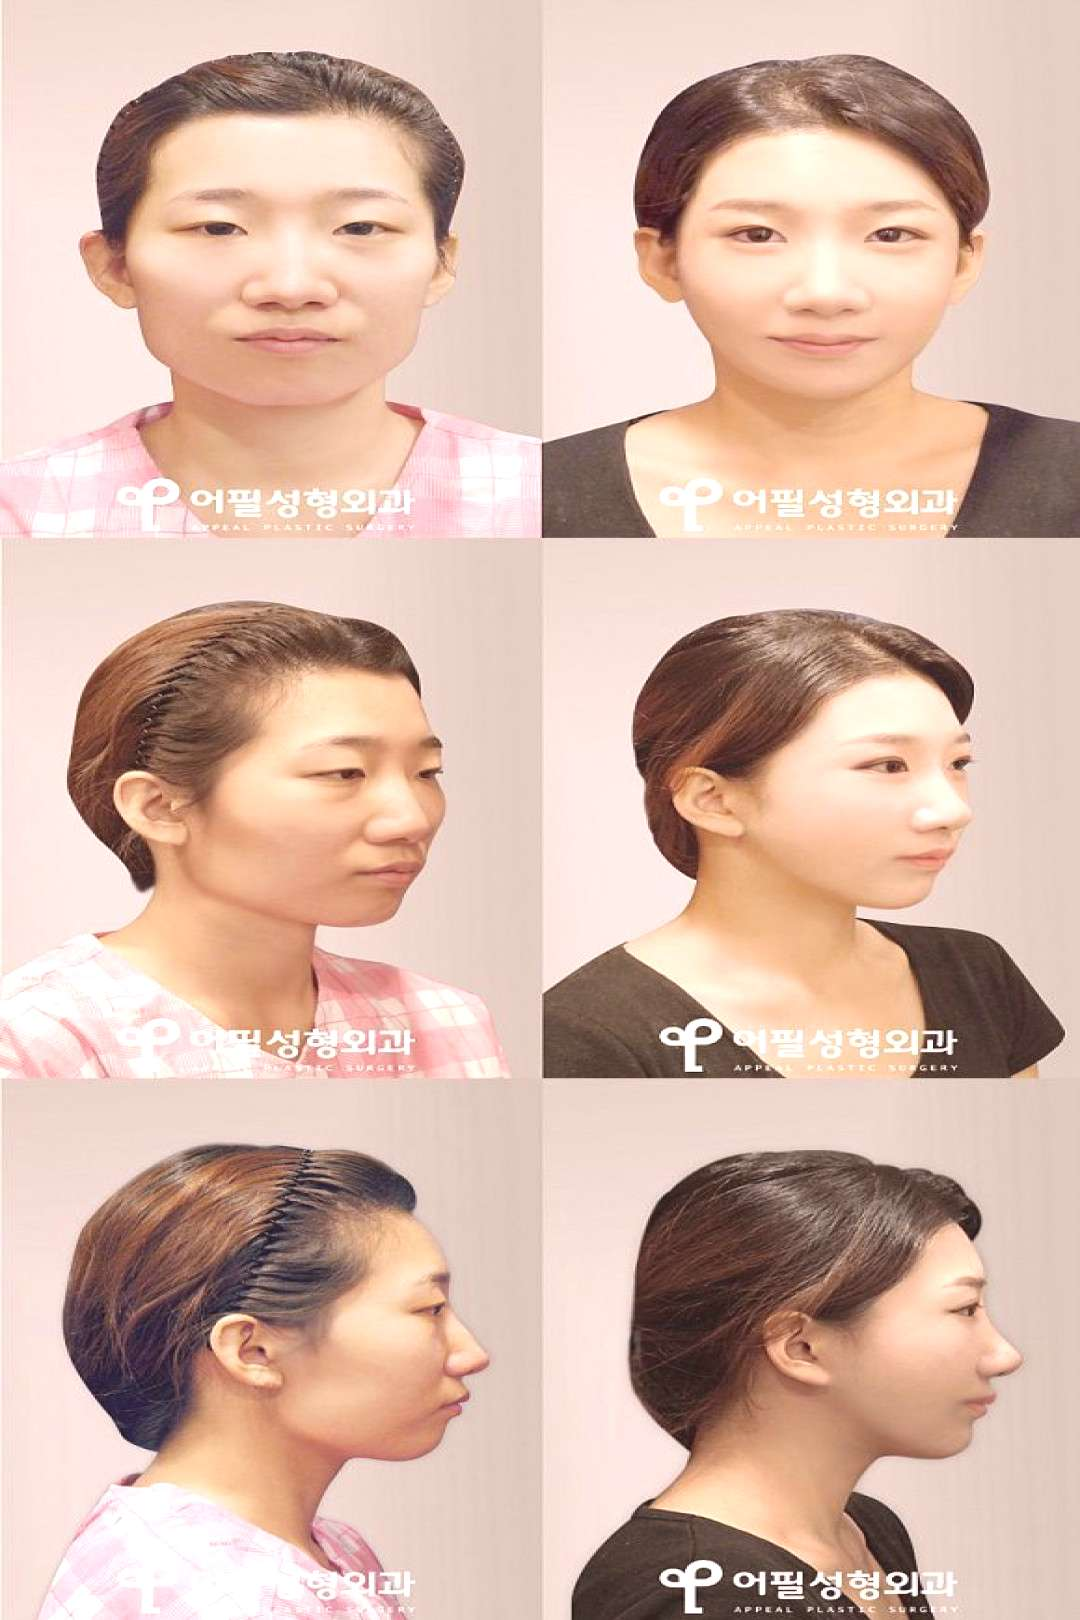 Korean plastic surgery before and after ... - Korean plastic surgery before and after photo Facia